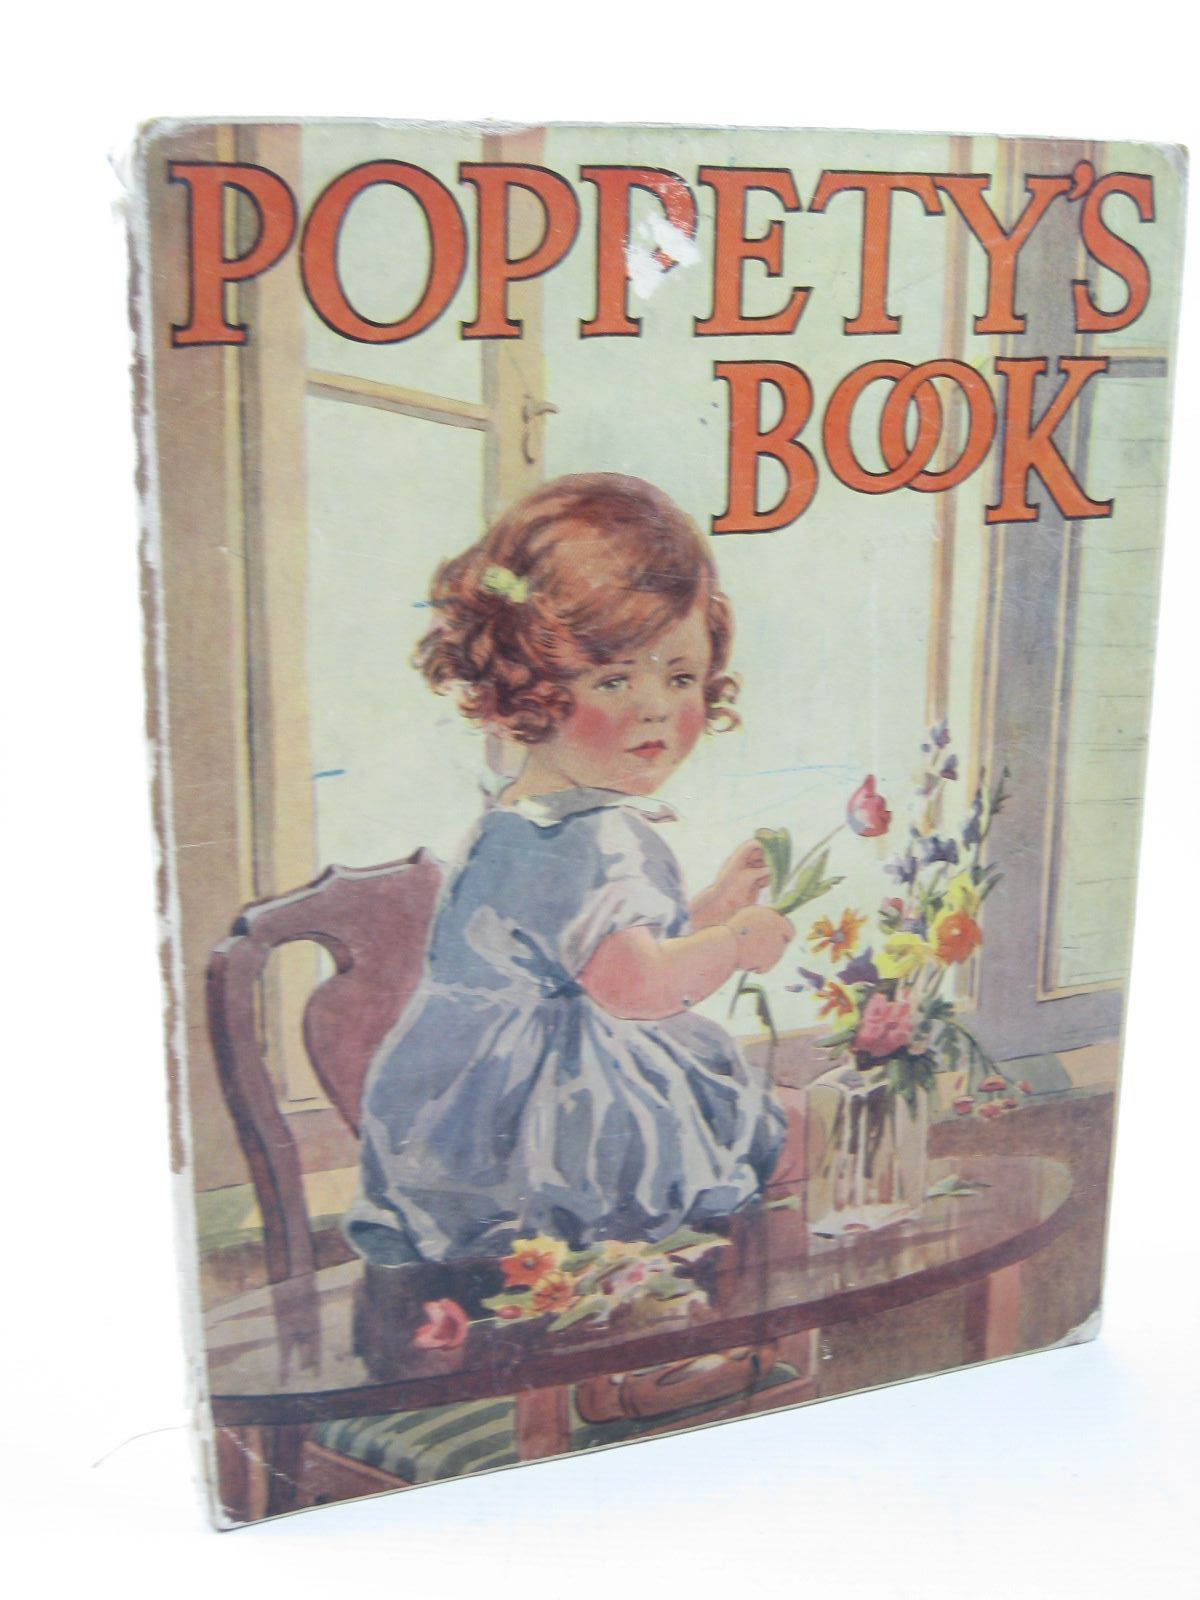 Photo of POPPETY'S BOOK illustrated by Topham, Inez Woolley, Harry et al., published by Thomas Nelson and Sons Ltd. (STOCK CODE: 1312066)  for sale by Stella & Rose's Books